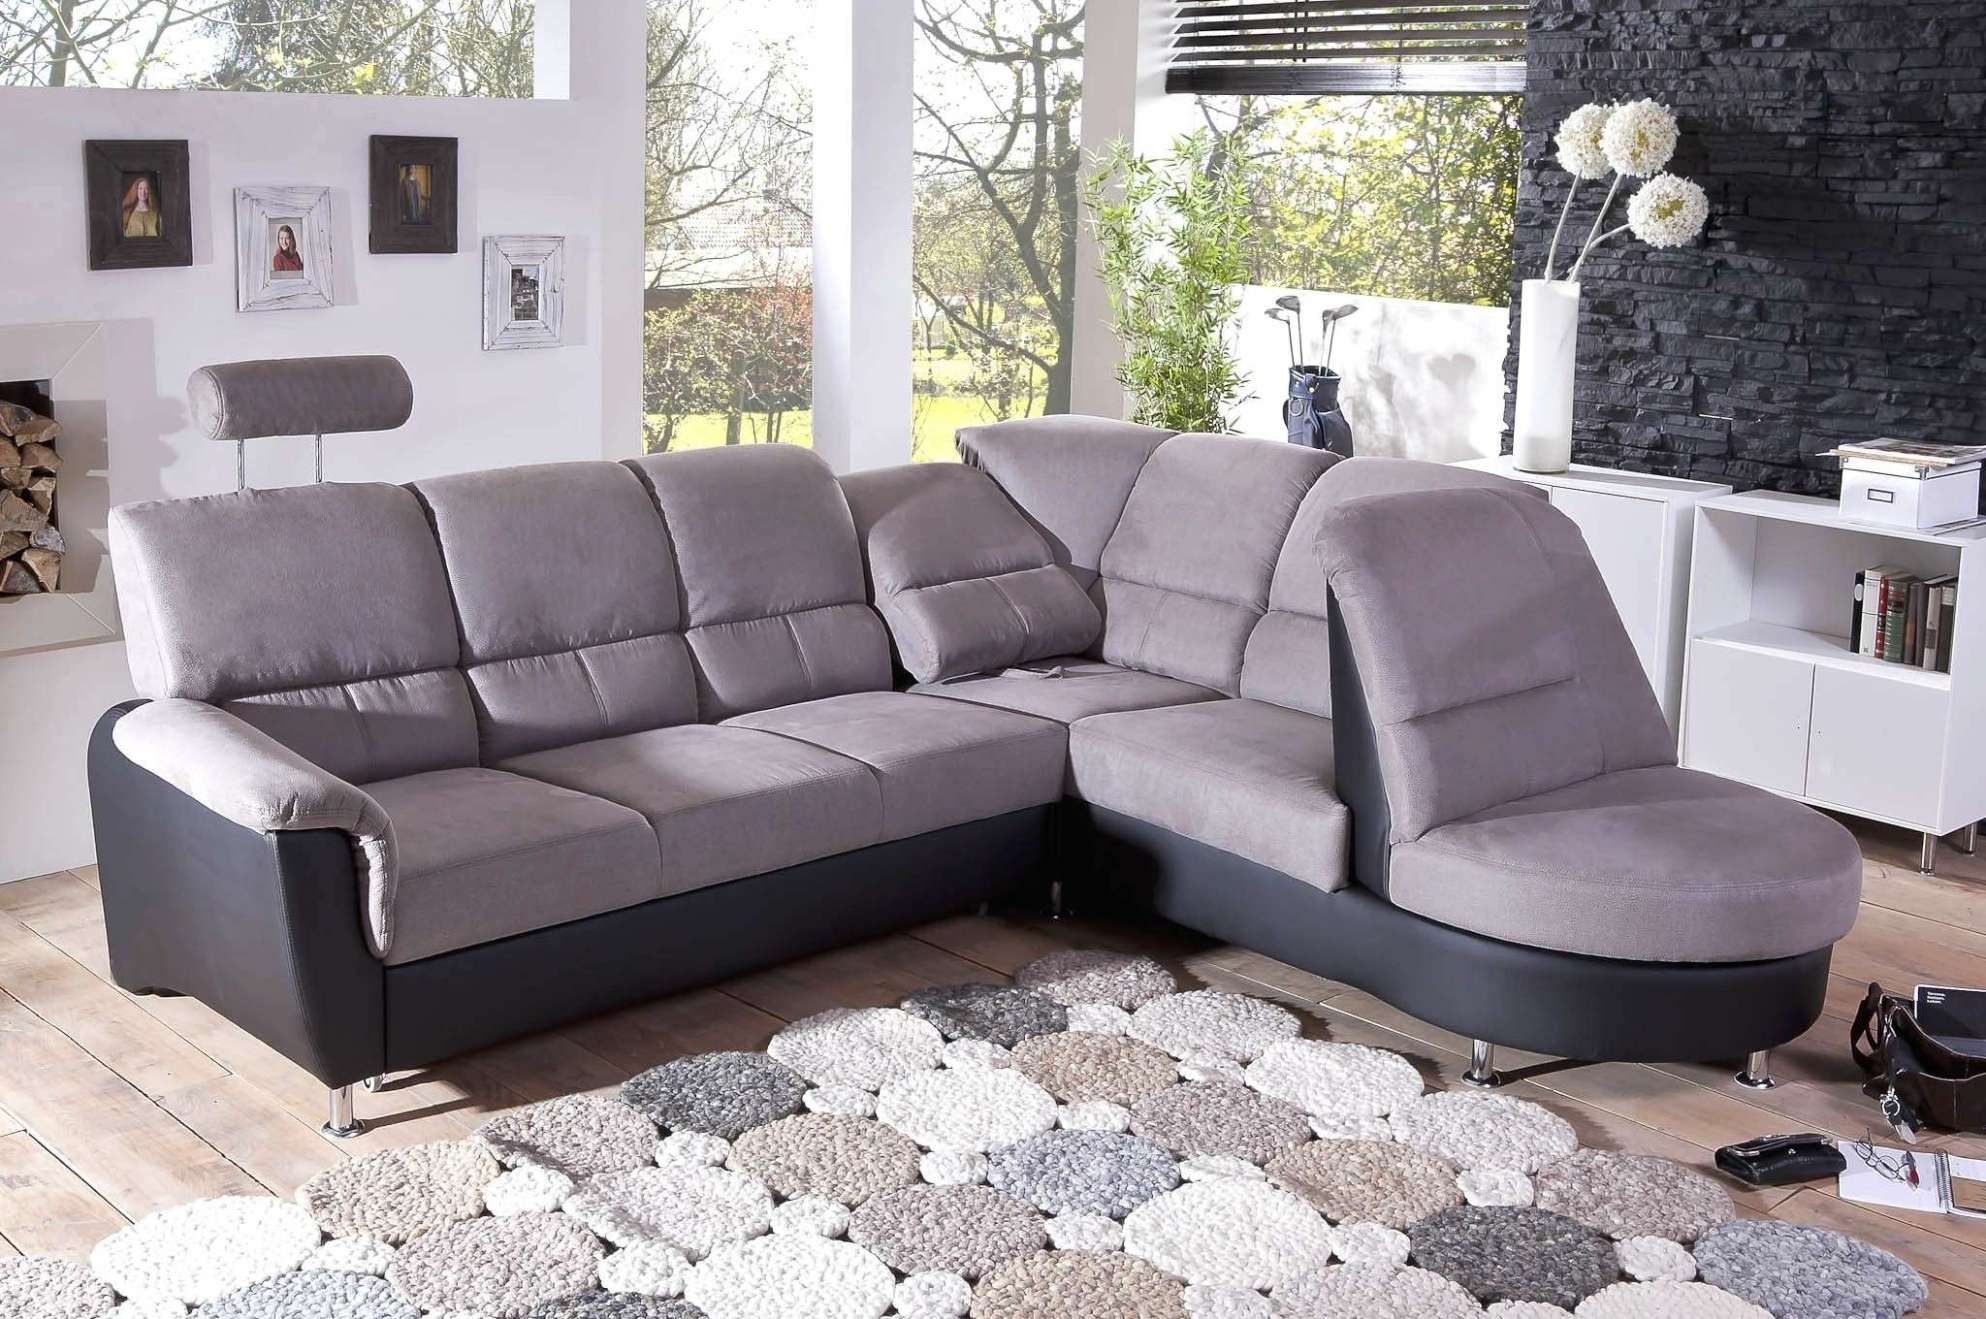 Ecksofa Kaufen Gunstig Ecksofa Leder Gunstig Yct Projekte In 2020 Home Decor Sofa Design Home